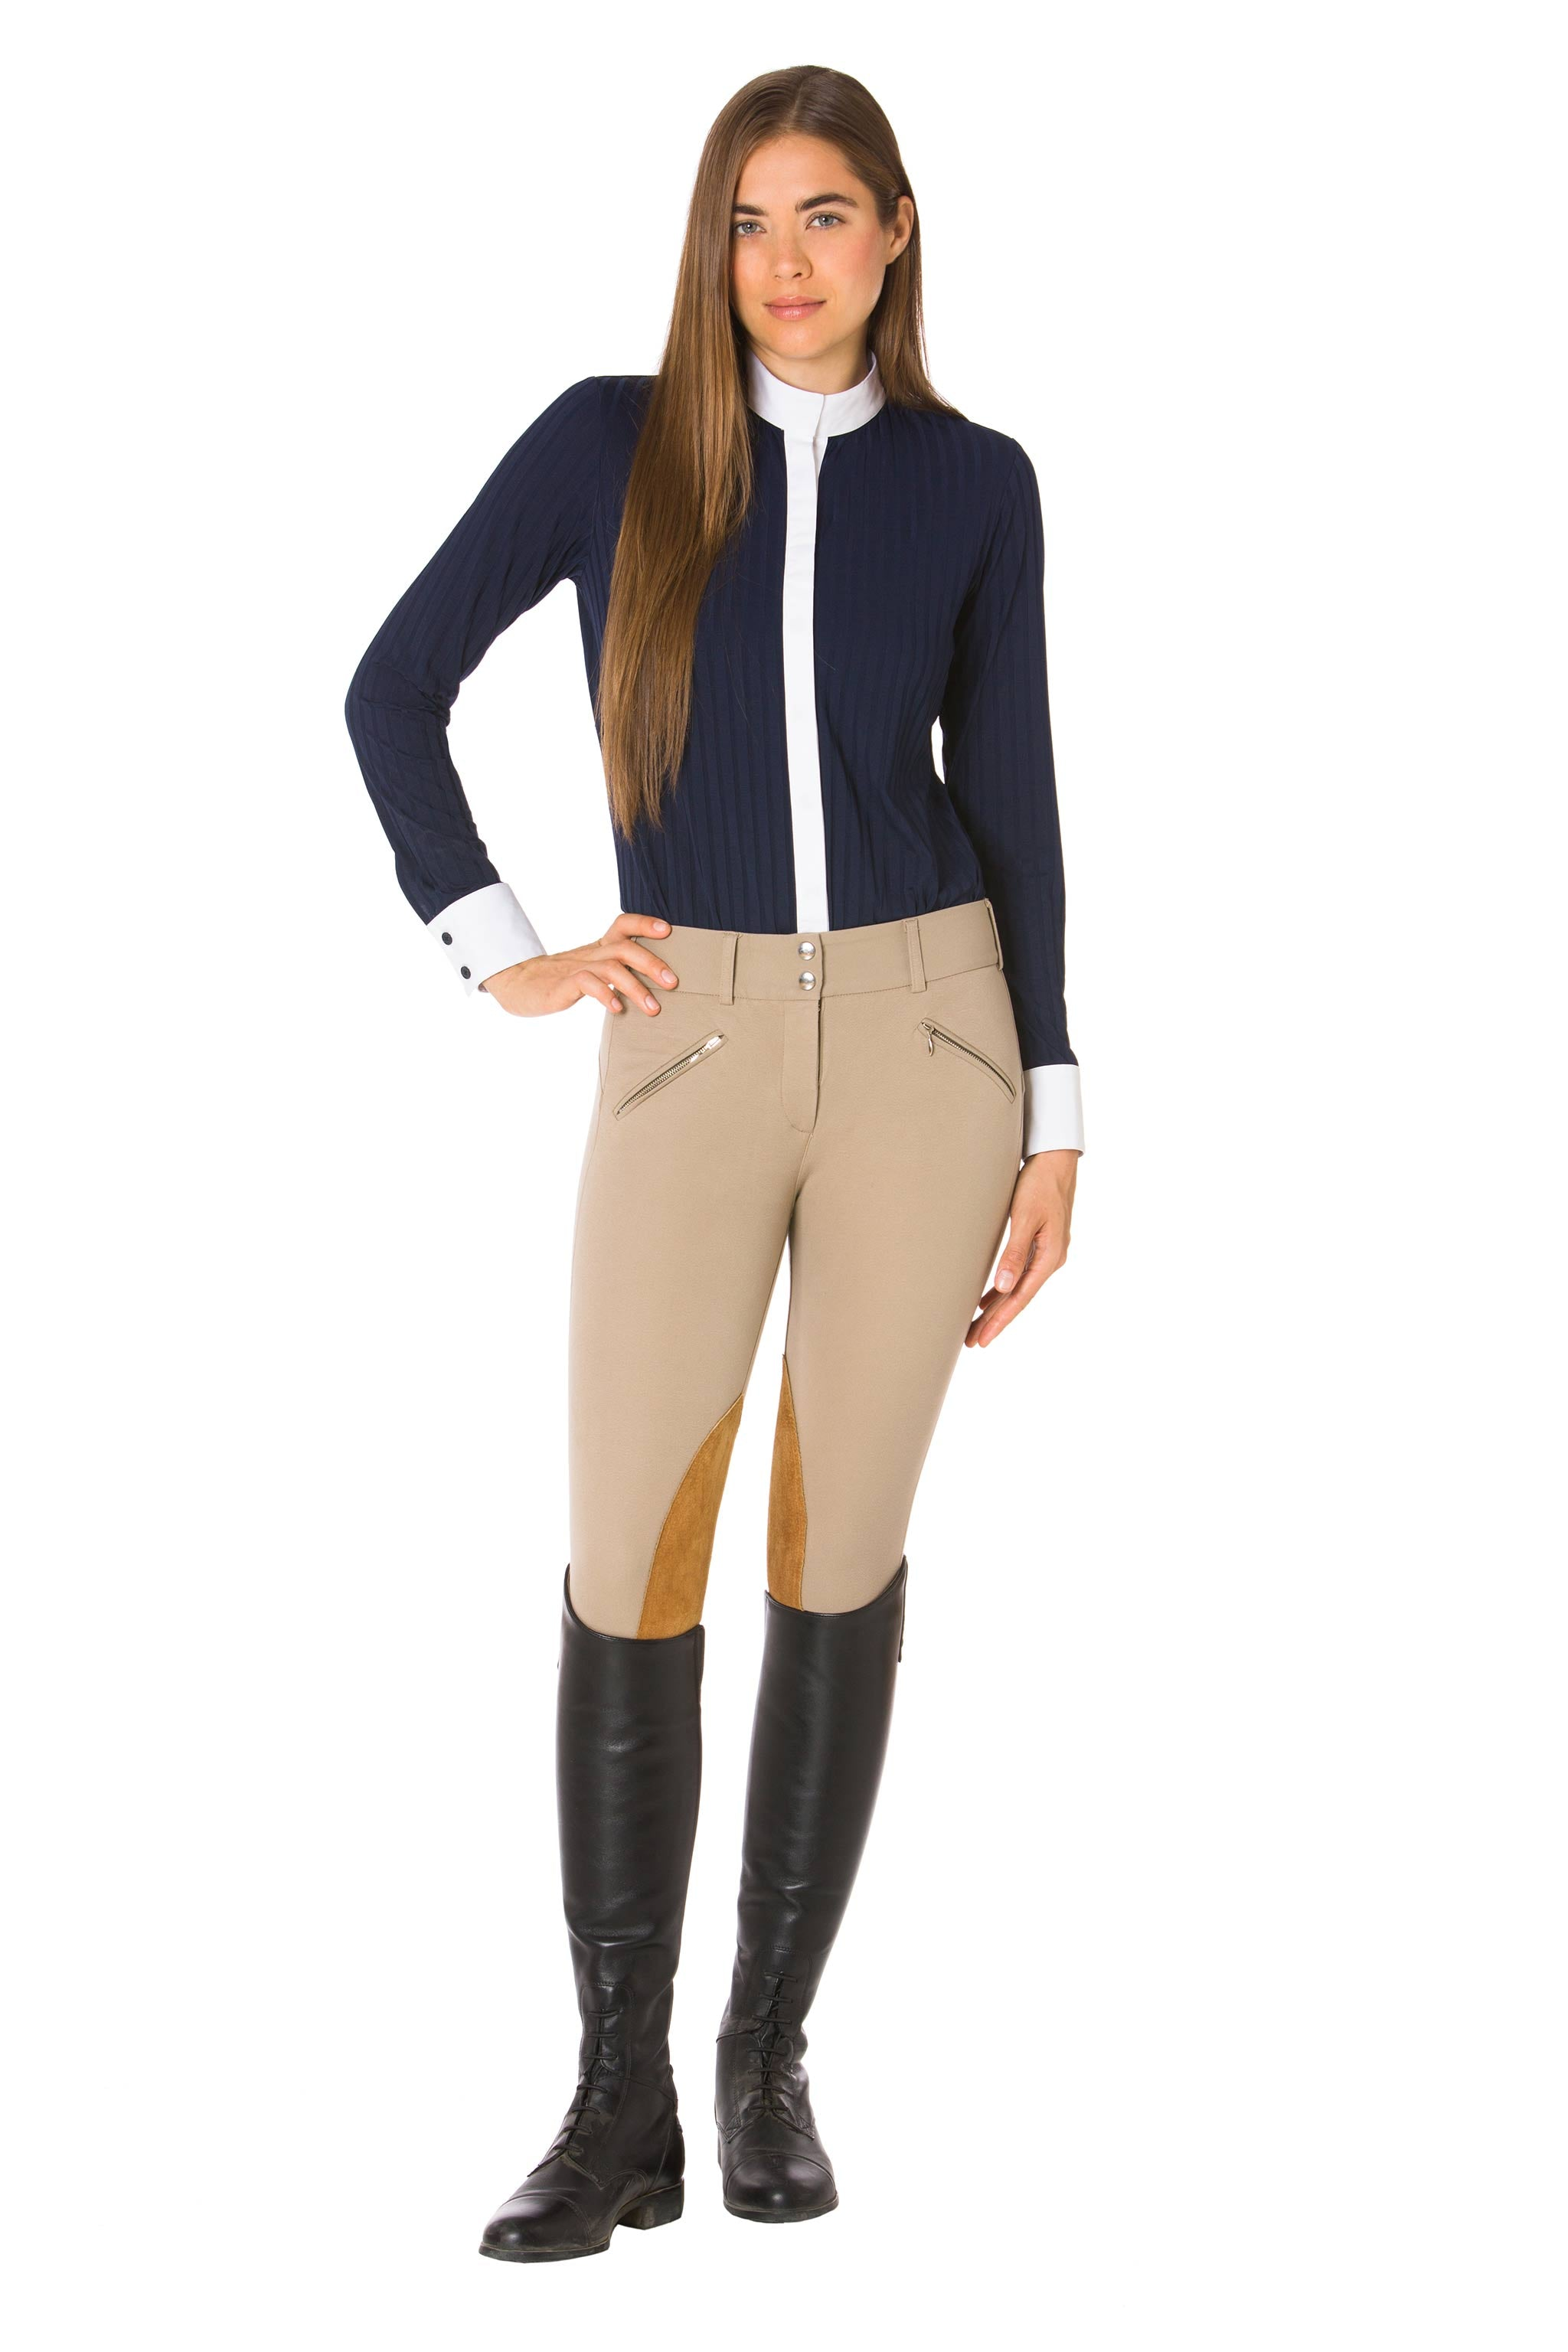 Wellington Tan-The Derby Riding Pant